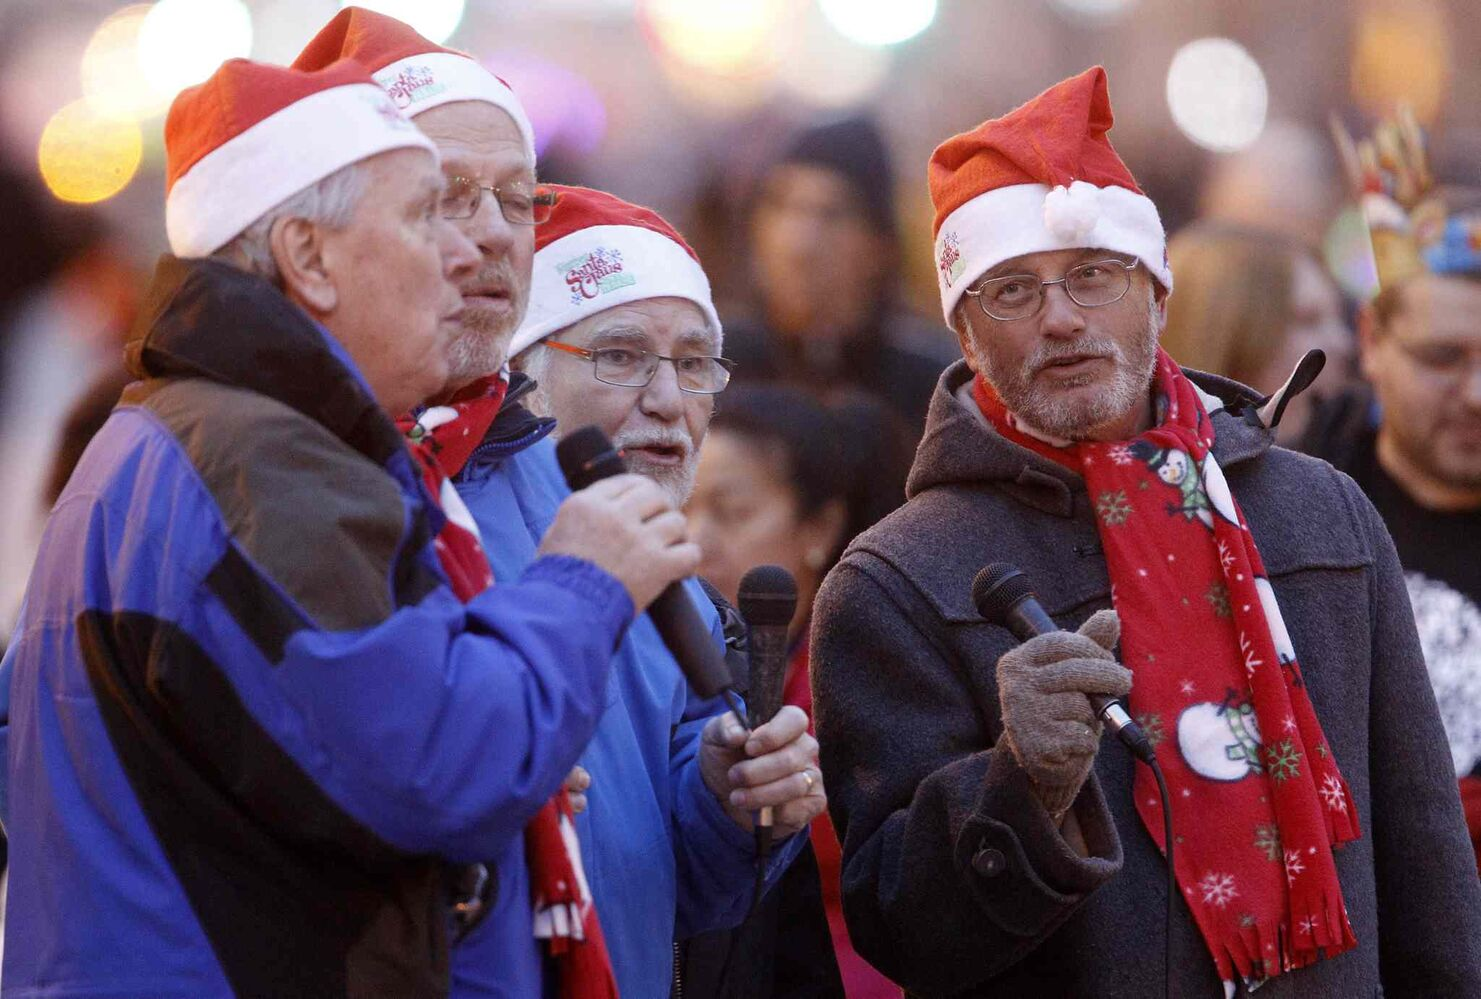 Men sing Christmas carols at the Santa Claus Parade. (TREVOR HAGAN / WINNIPEG FREE PRESS)